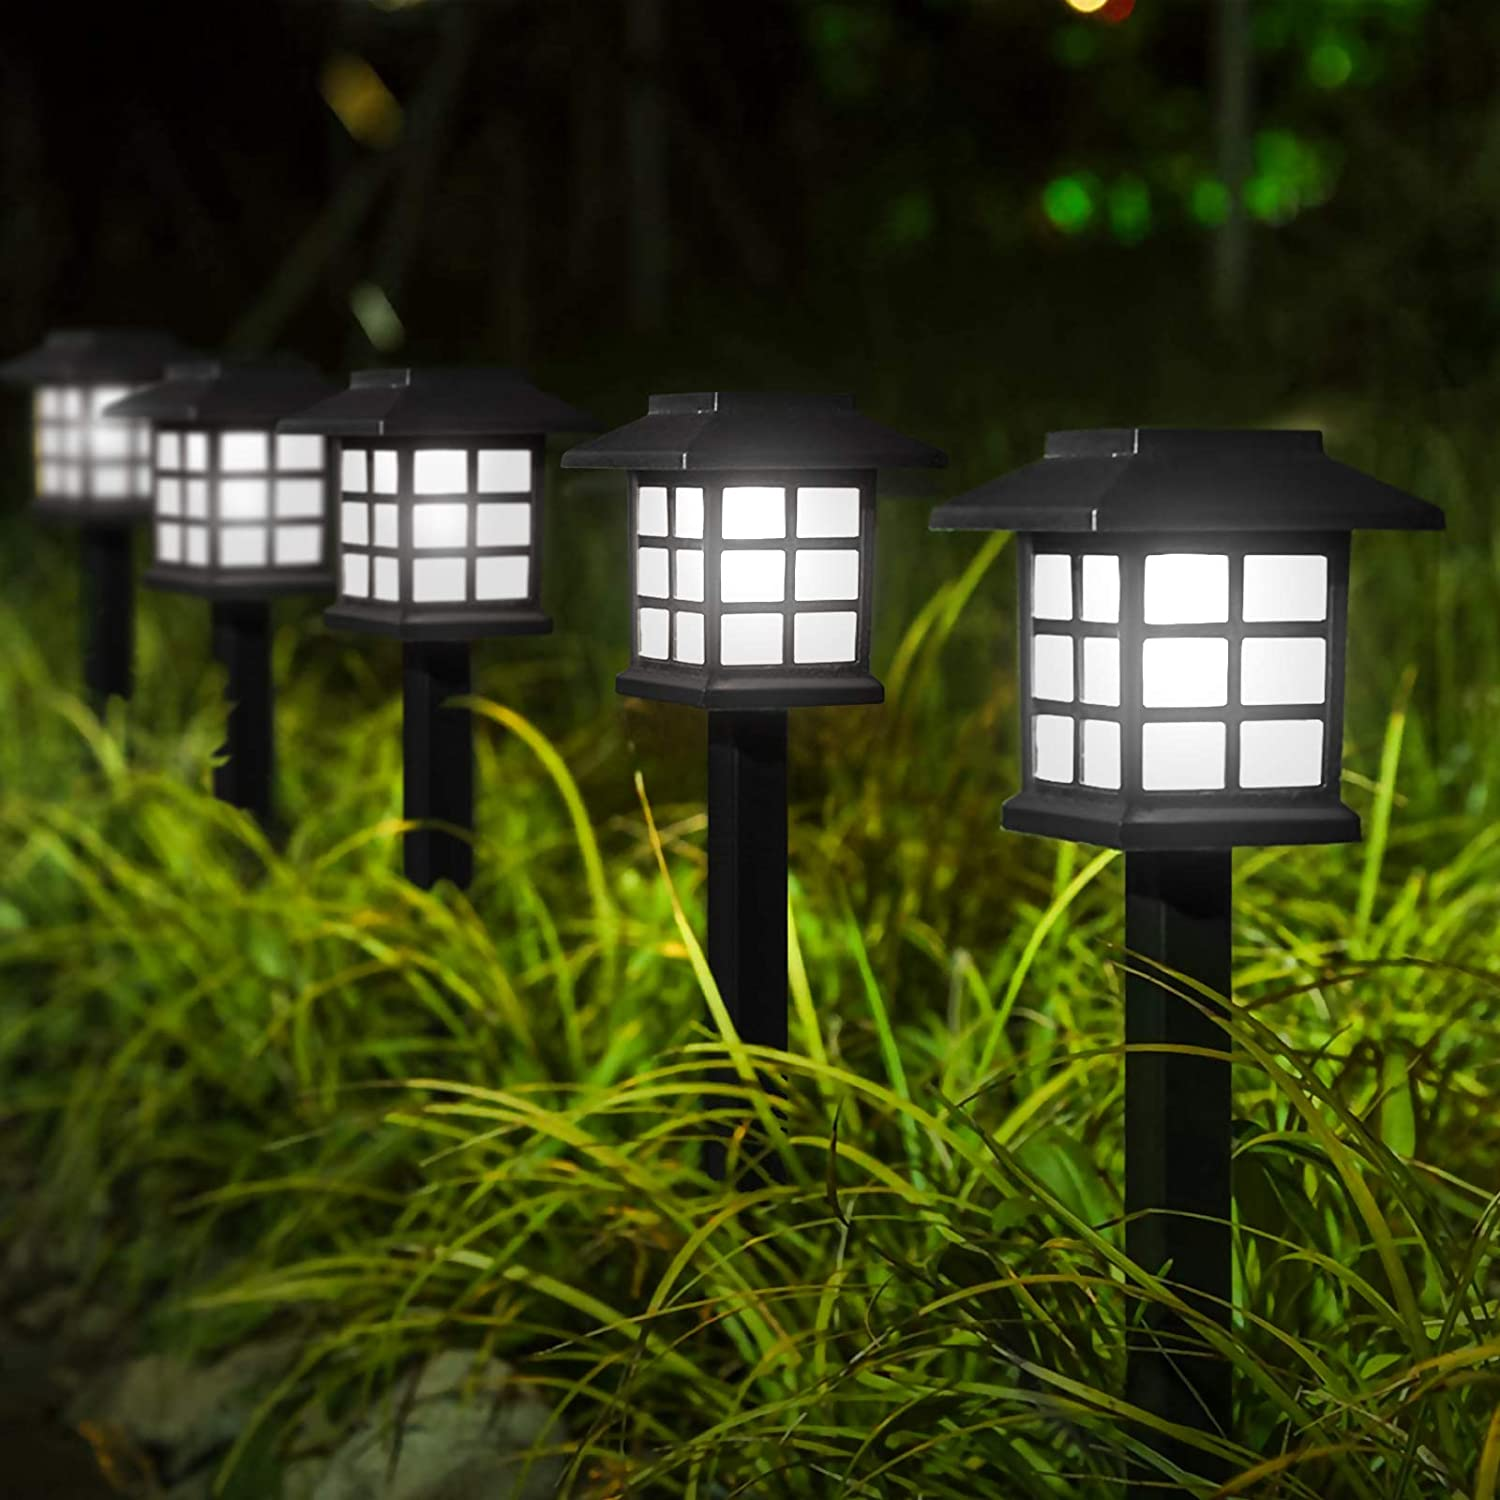 "YUNLIGHTS Upgraded Solar Stake Lights 8PCS, Garden Solar Lights Outdoor Pathway Lights Waterproof, 15""x3.35"" Solar Landscape Lights for Garden Path, Walkway, Lawn (White)"